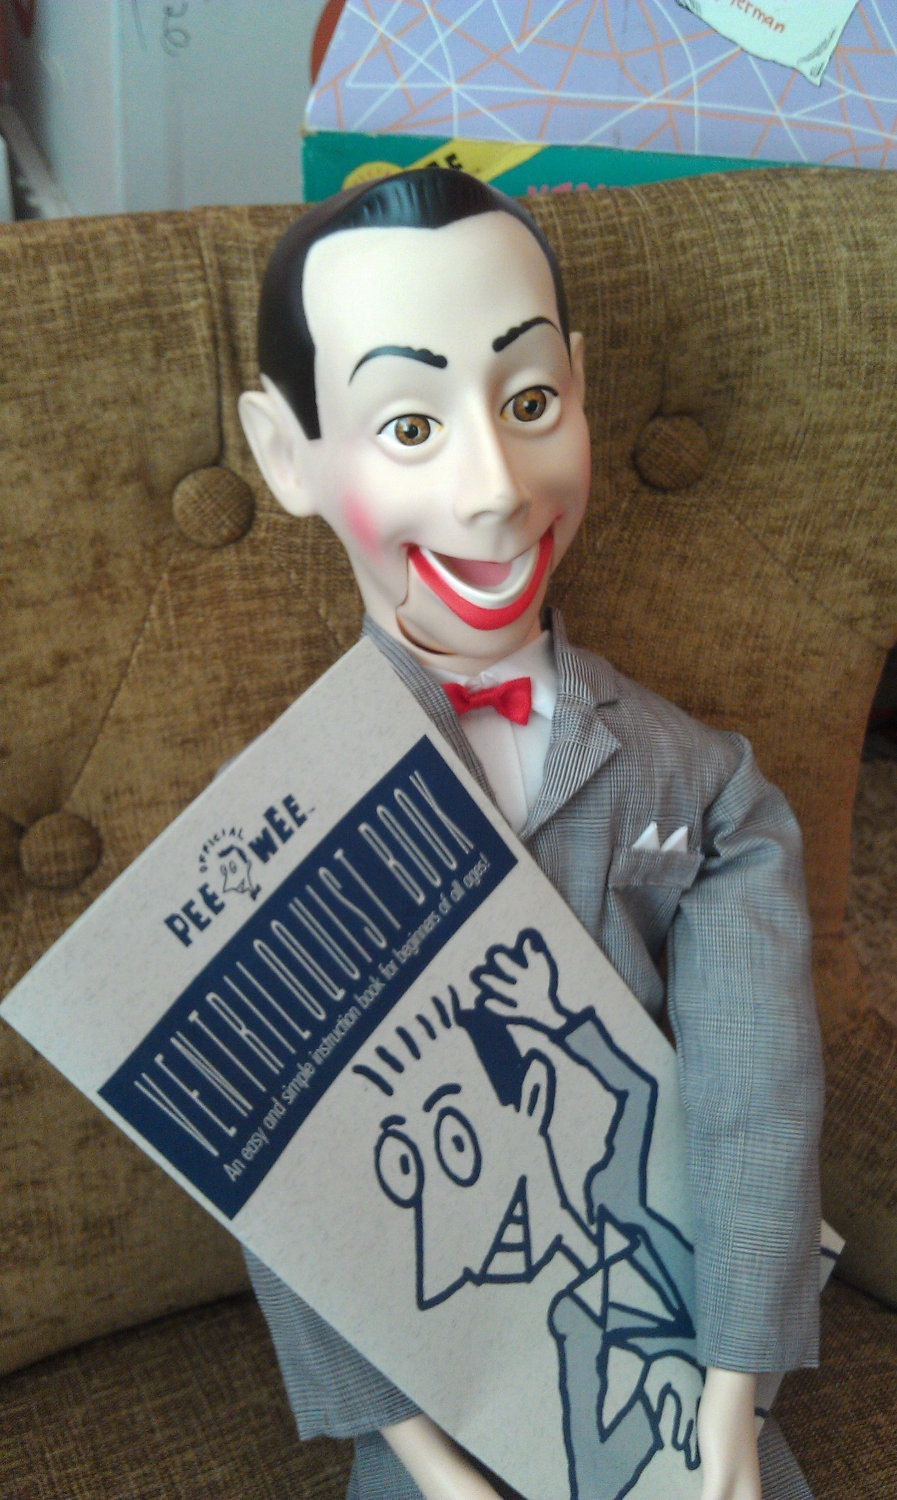 1989 pee wee herman ventriloquist doll by inrareformvintage. Black Bedroom Furniture Sets. Home Design Ideas